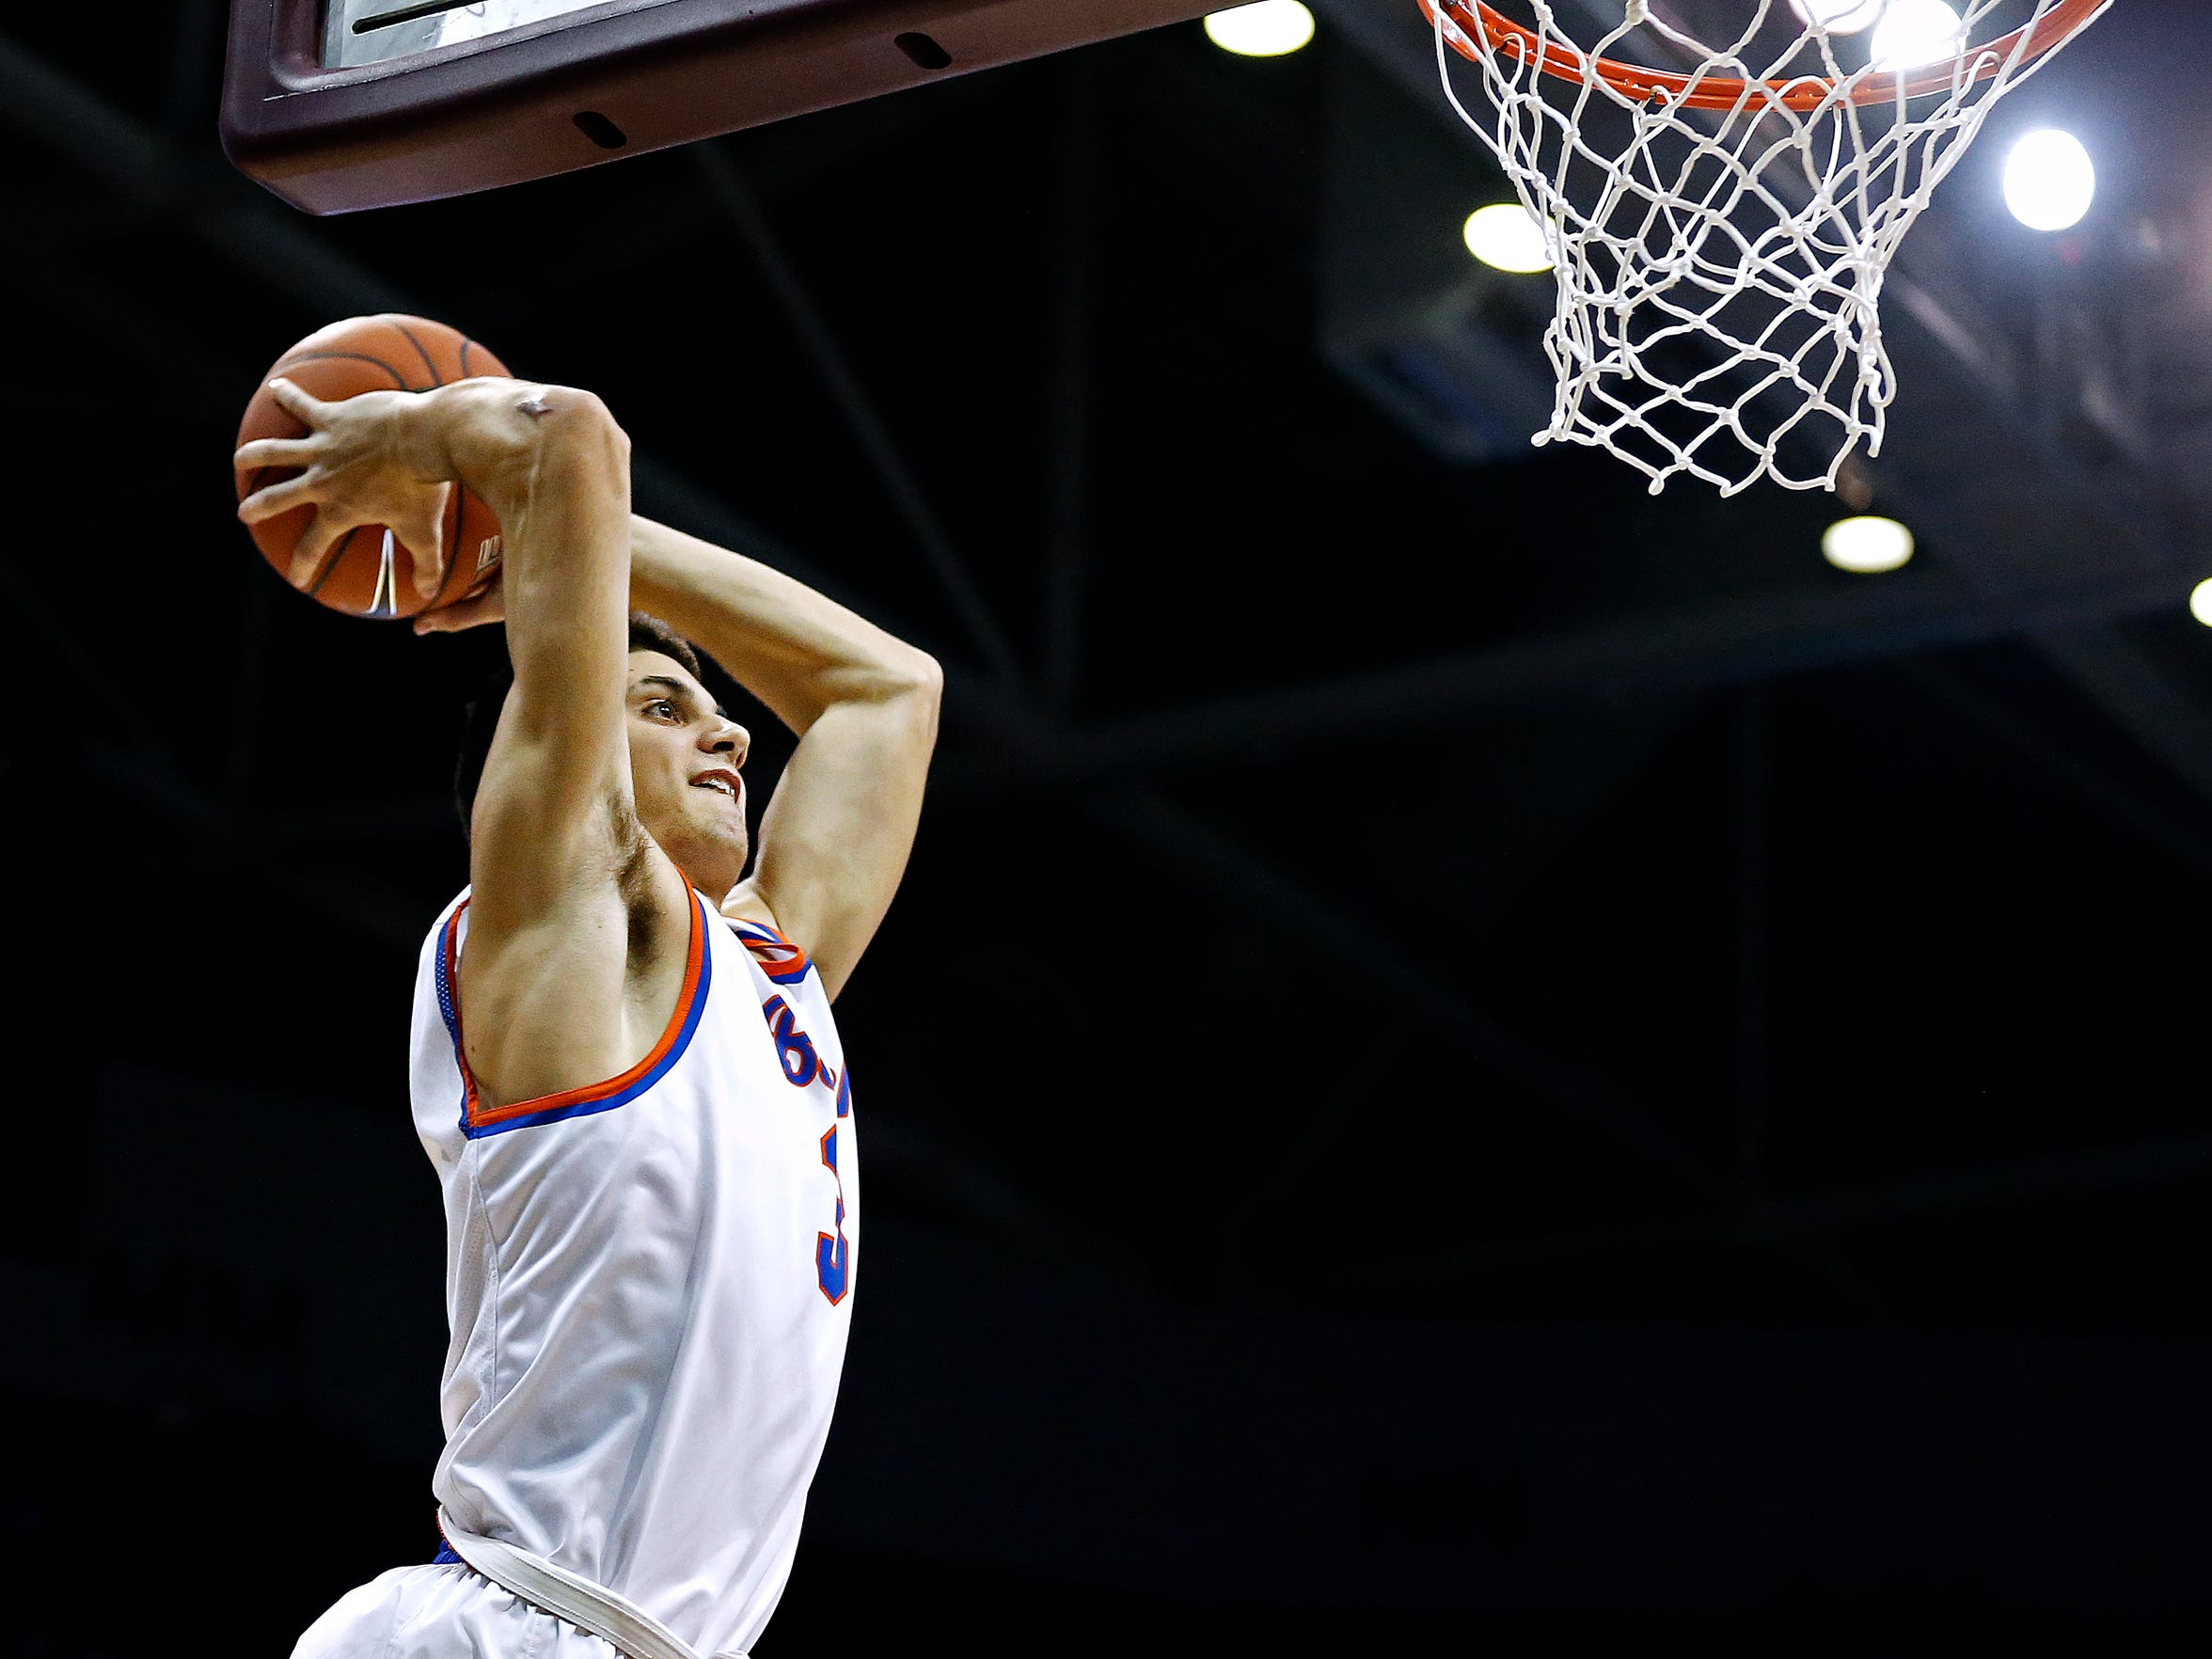 Former Rainier Beach High School guard Sam Cunliffe dunks the ball during the 2015 Tournament of Champions semifinal against Oak Hill Academy at JQH Arena in Springfield, Mo.